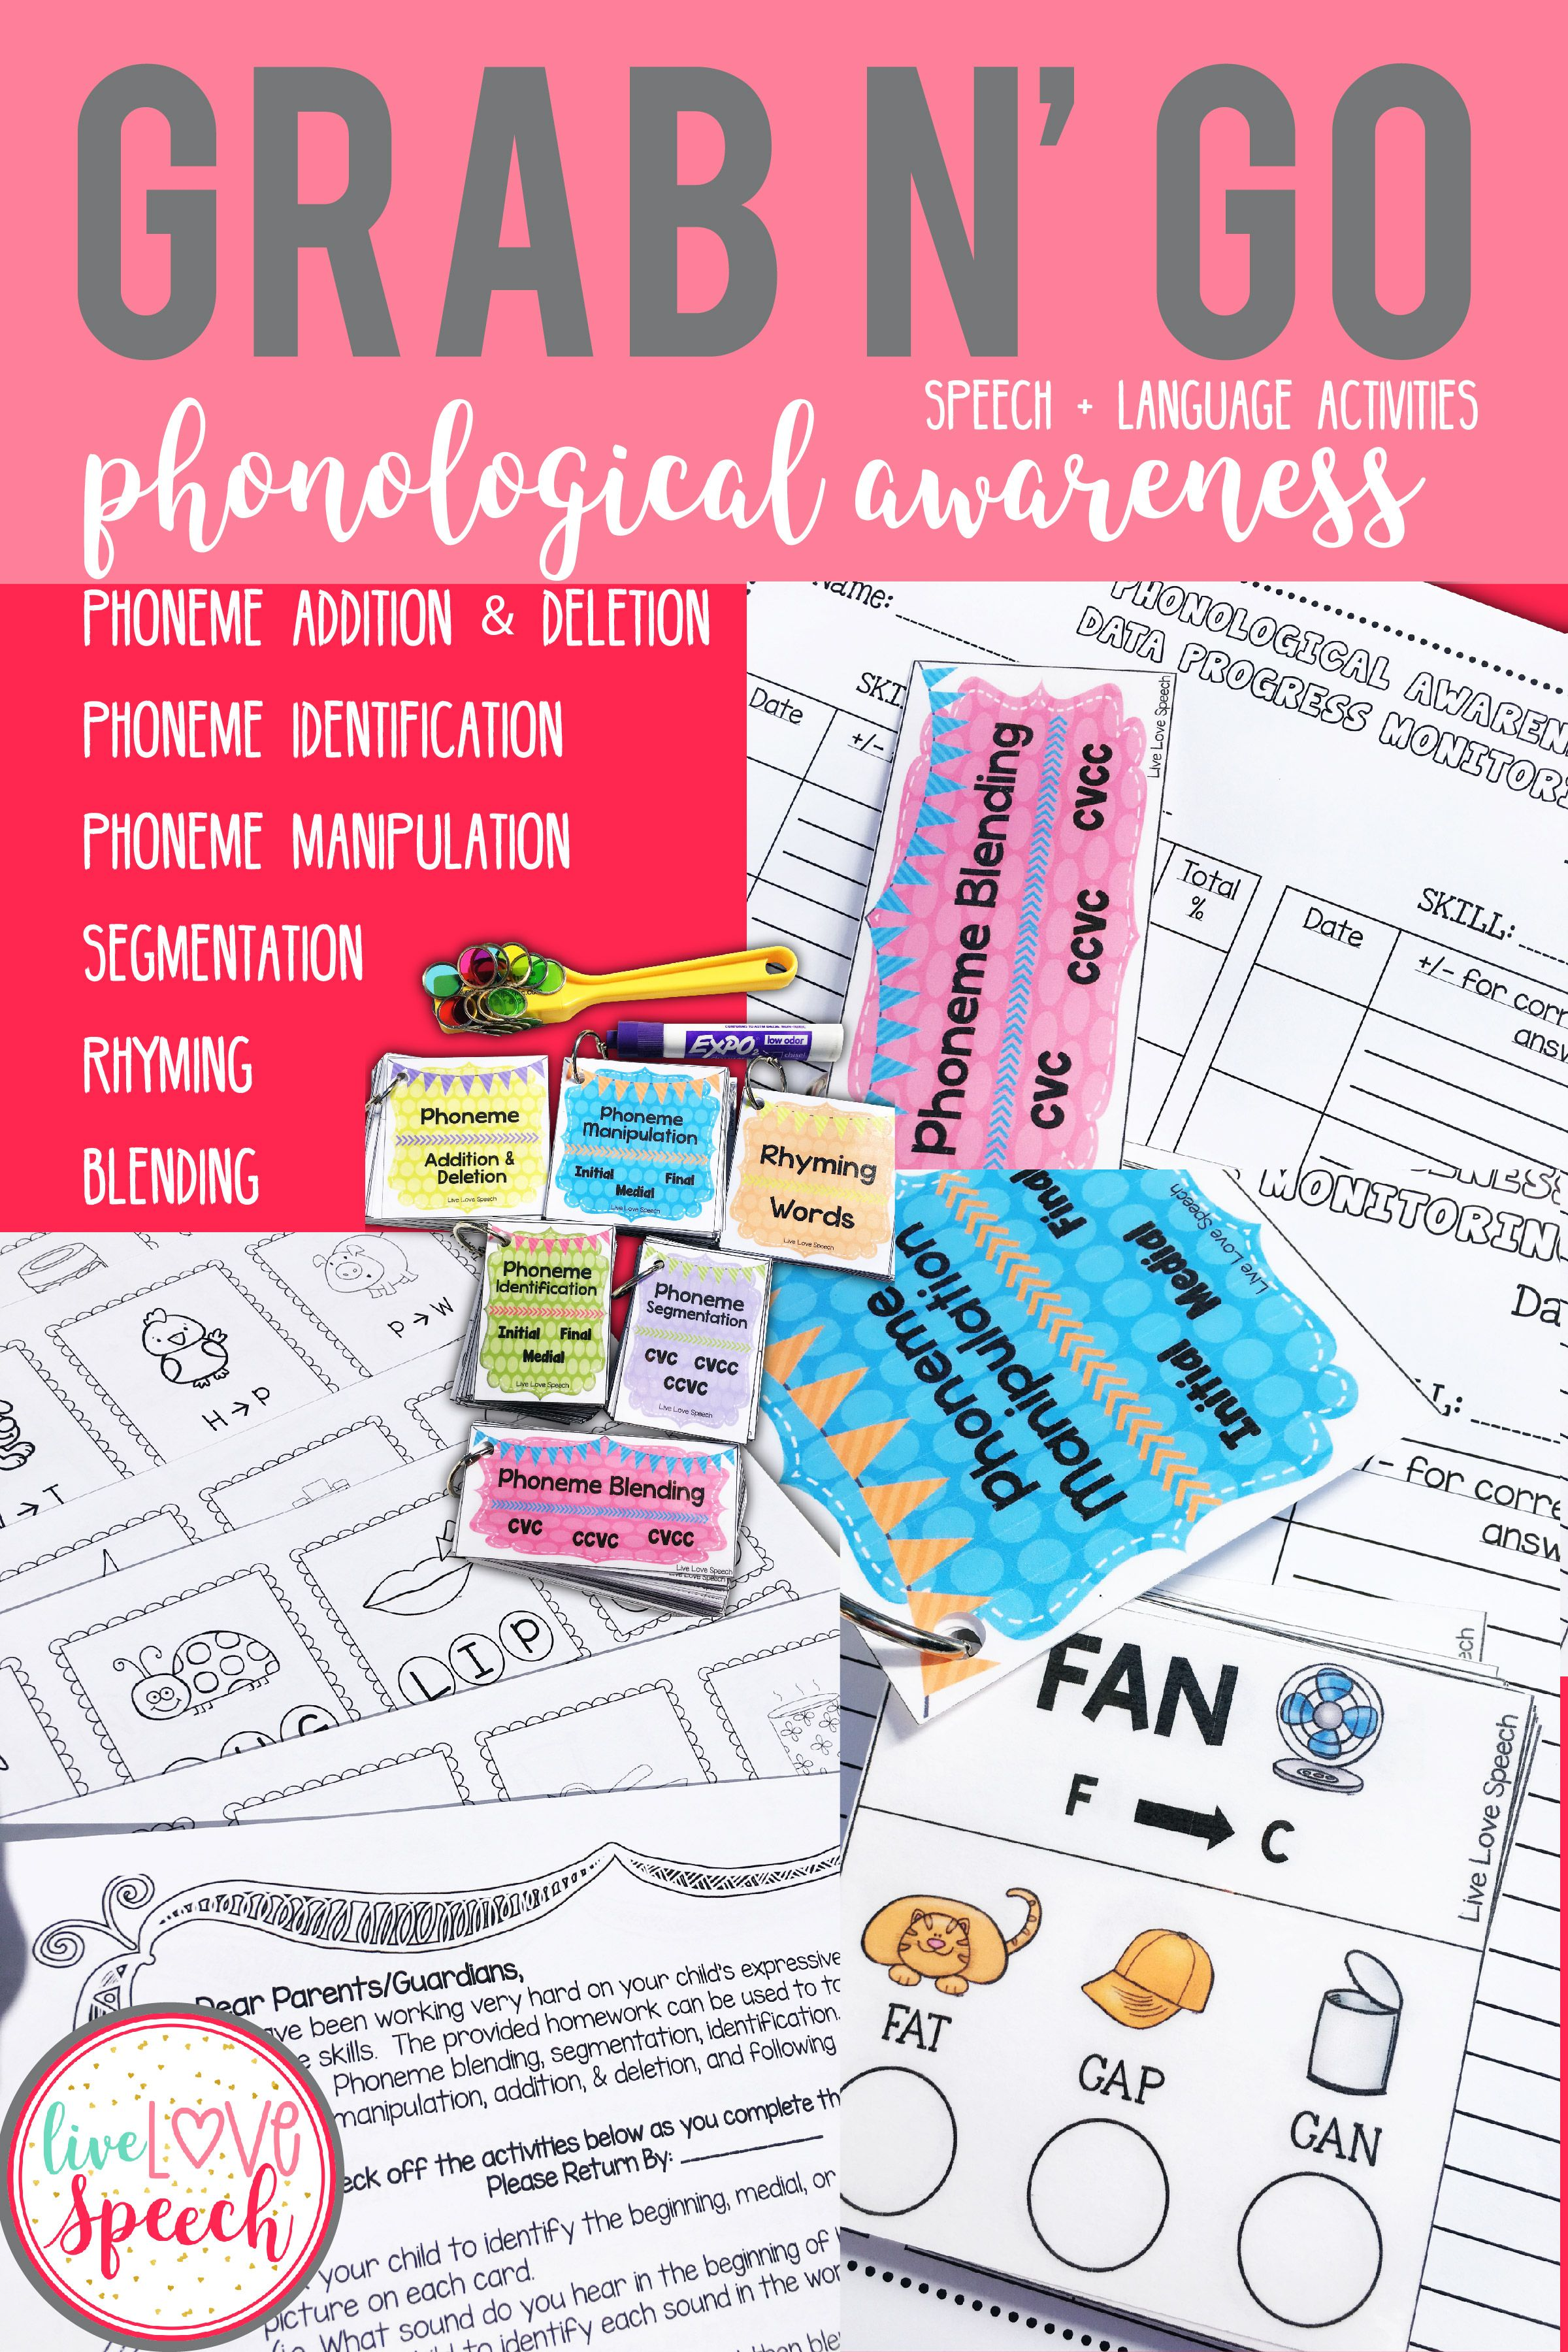 Grab N Go Phonological Awareness